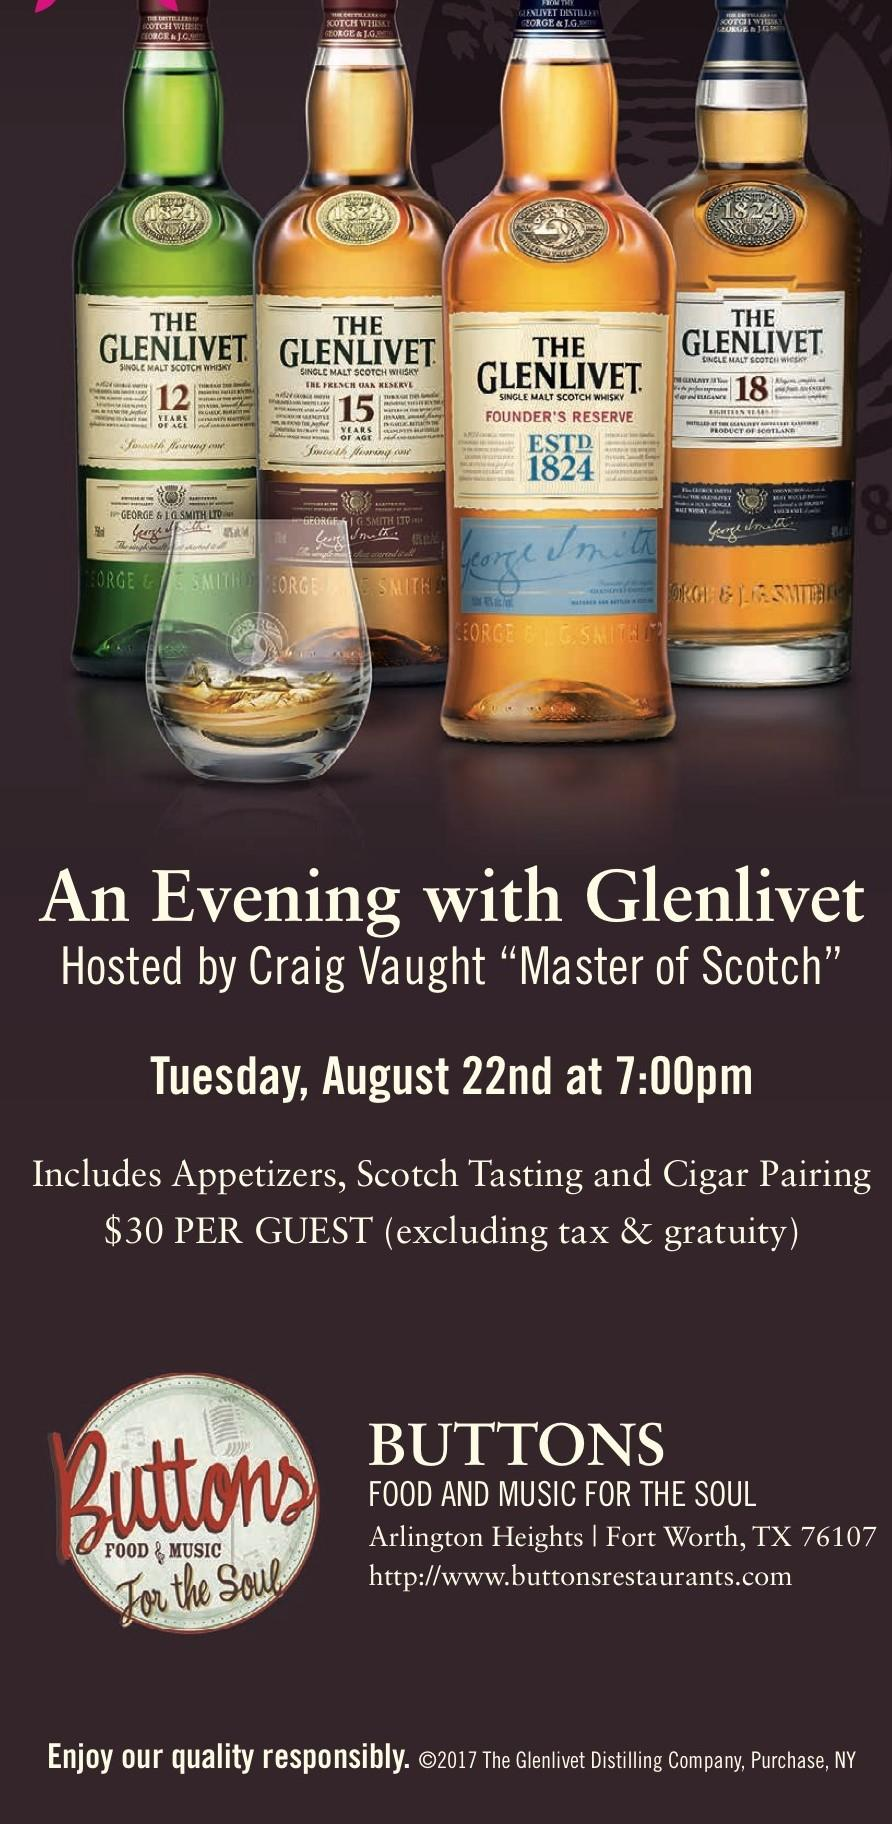 An Evening with The Glen Livet